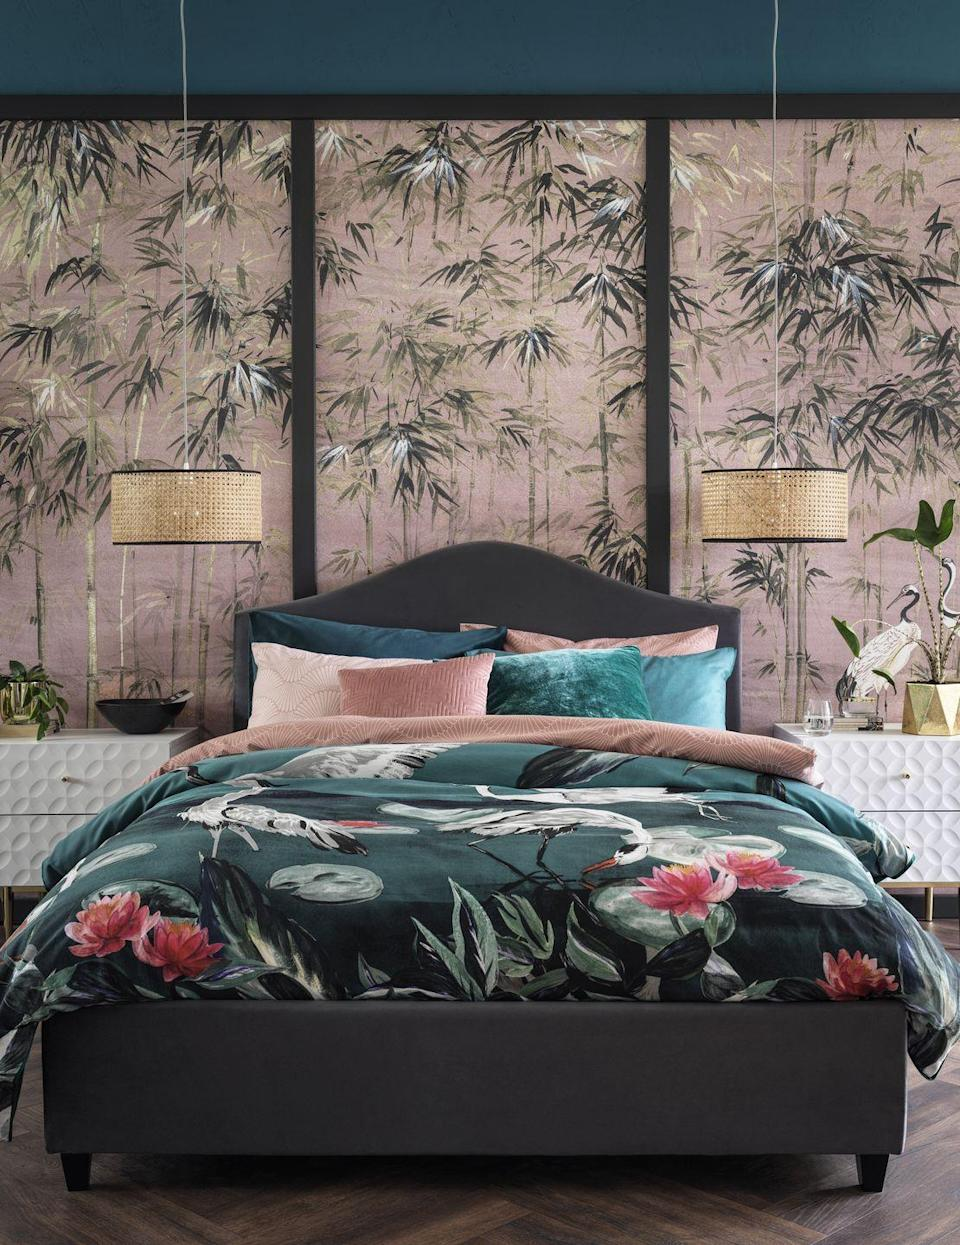 """<p>'Printed bedding is a bestseller at Habitat, appealing to those looking for an instant style update and ideal for <a href=""""https://www.housebeautiful.com/uk/decorate/a35093246/decorating-rented-home/"""" rel=""""nofollow noopener"""" target=""""_blank"""" data-ylk=""""slk:renters"""" class=""""link rapid-noclick-resp"""">renters</a> who are big on pattern but unable to wallpaper or paint,' adds Anna. </p><p>'Our latest design looked to high-end fashion houses for inspiration, to create a head-turning, romantic motif of elegant cranes and painterly water lilies.'</p>"""